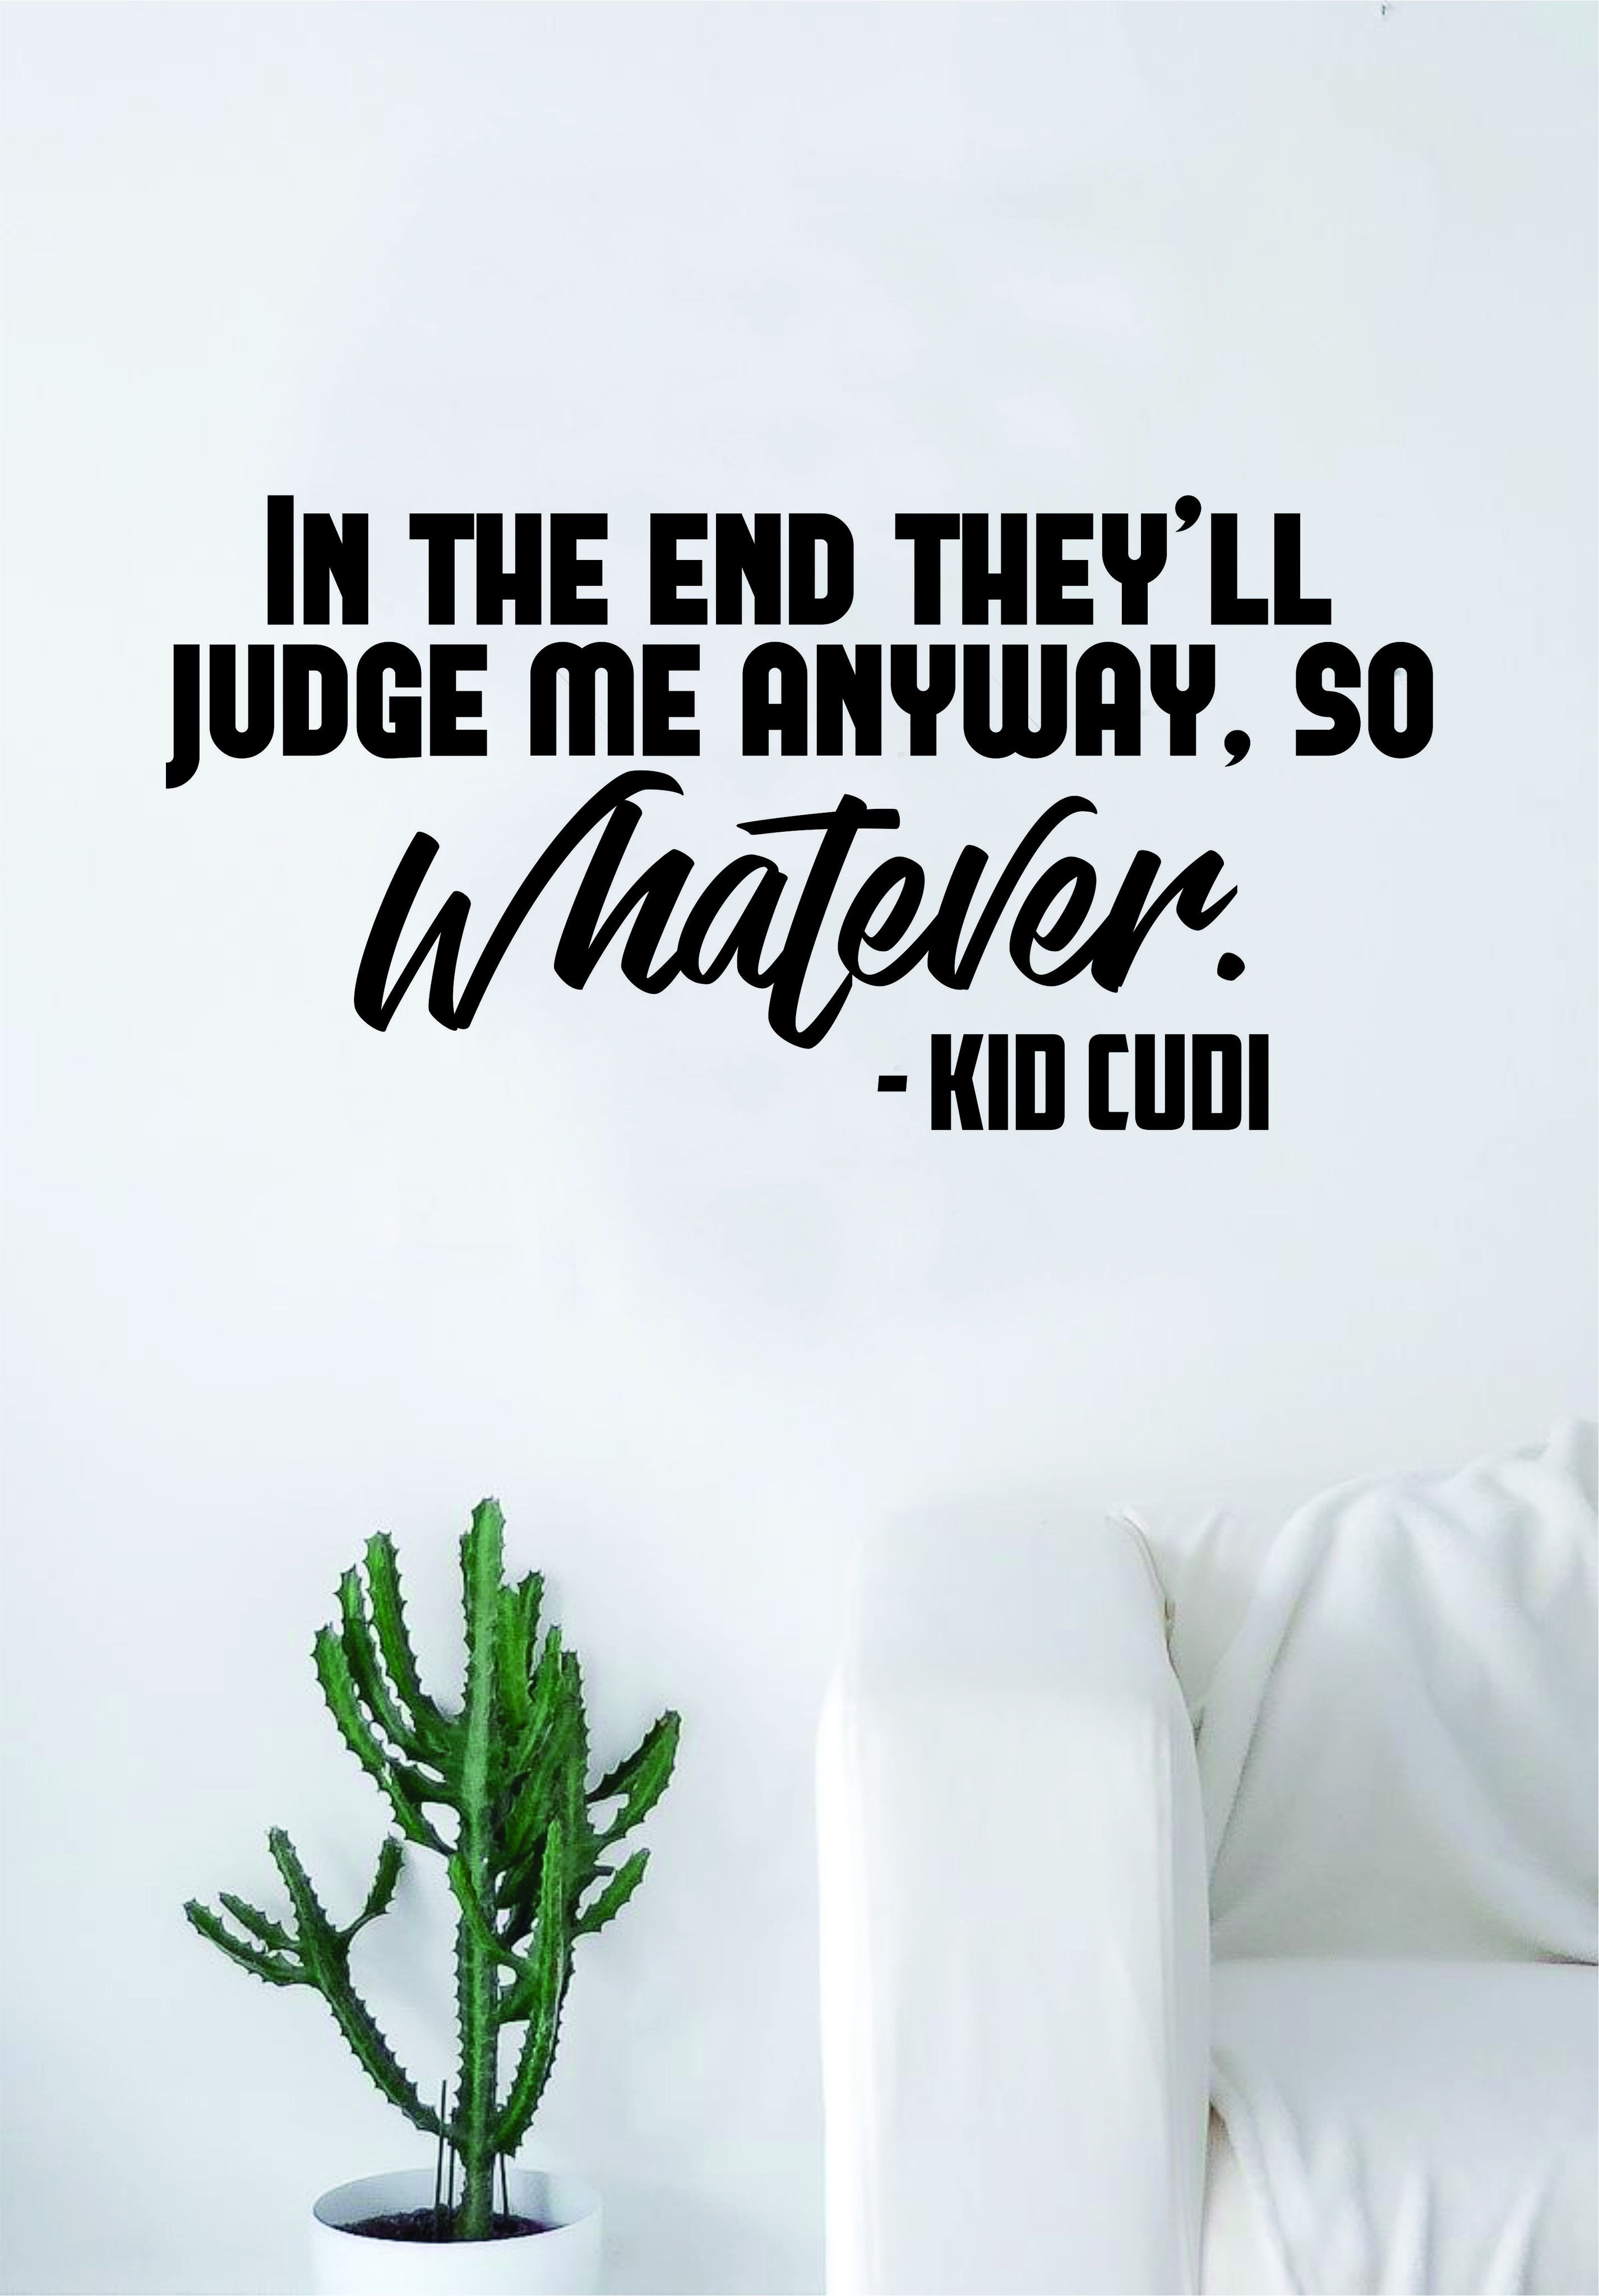 Kid cudi so whatever quote decal sticker wall room vinyl